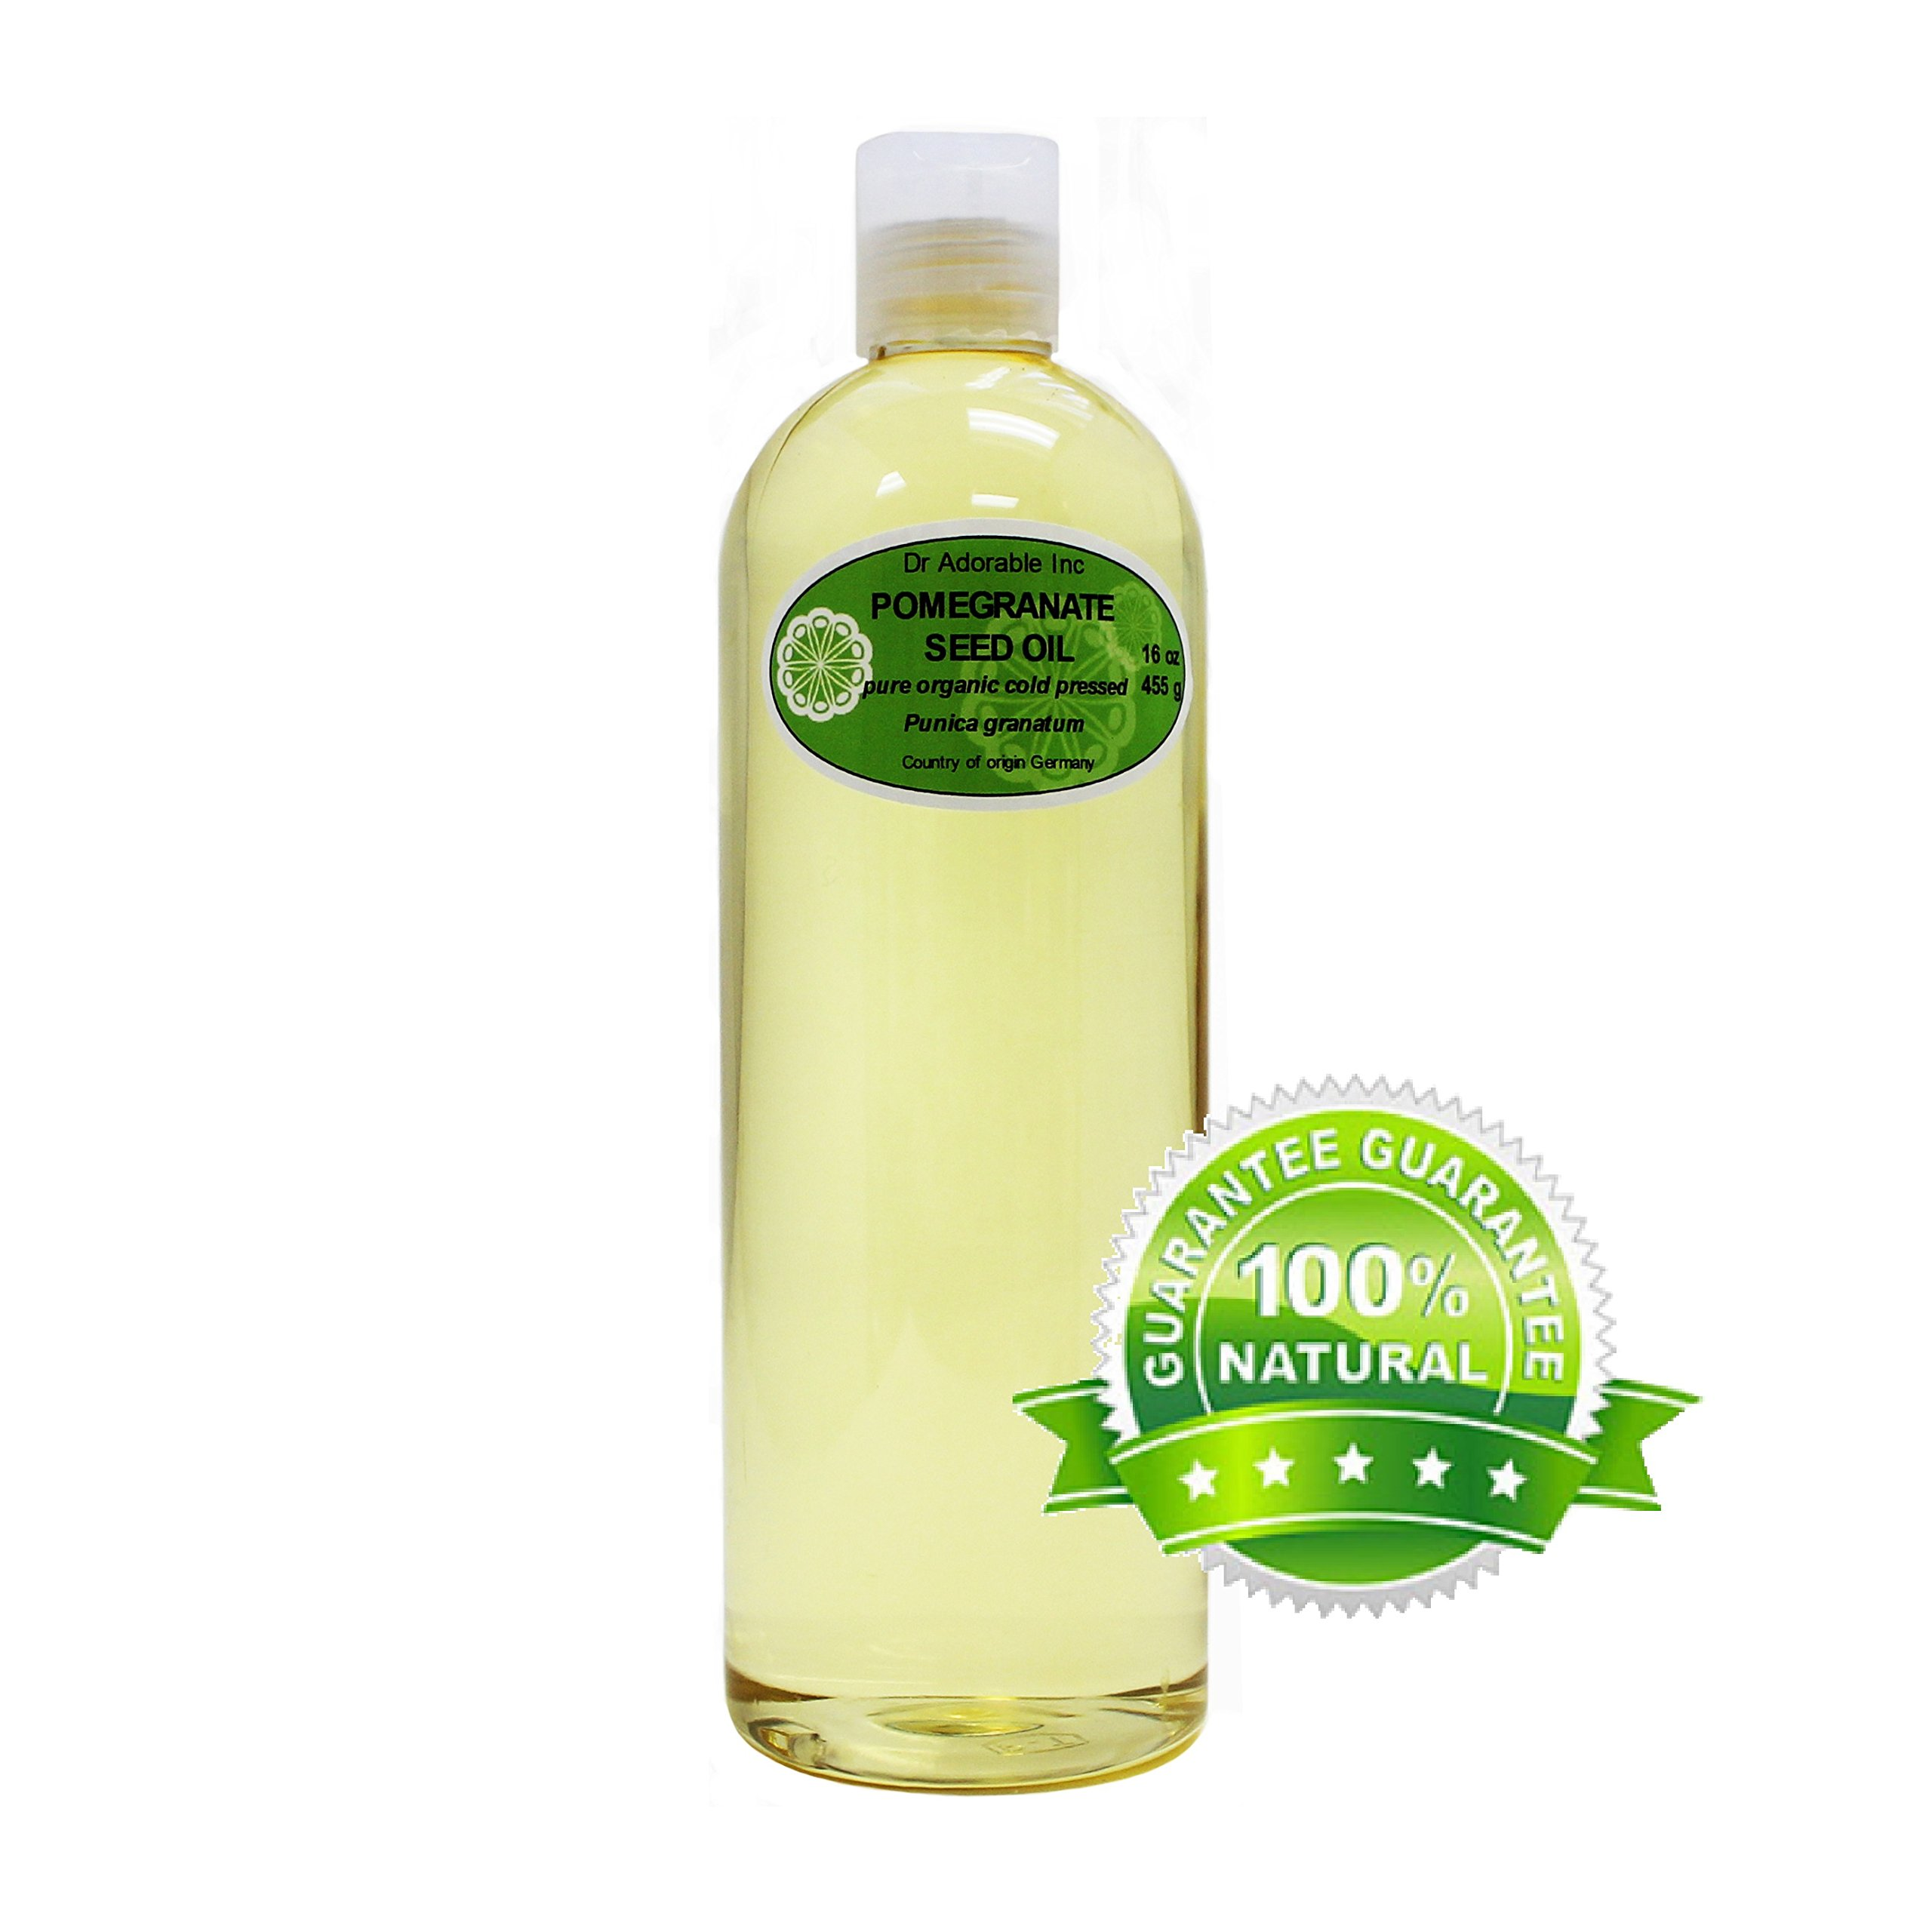 Organic Pure Carrier Oils Cold Pressed 16 Oz/1 Pint (Pomegranate Oil)